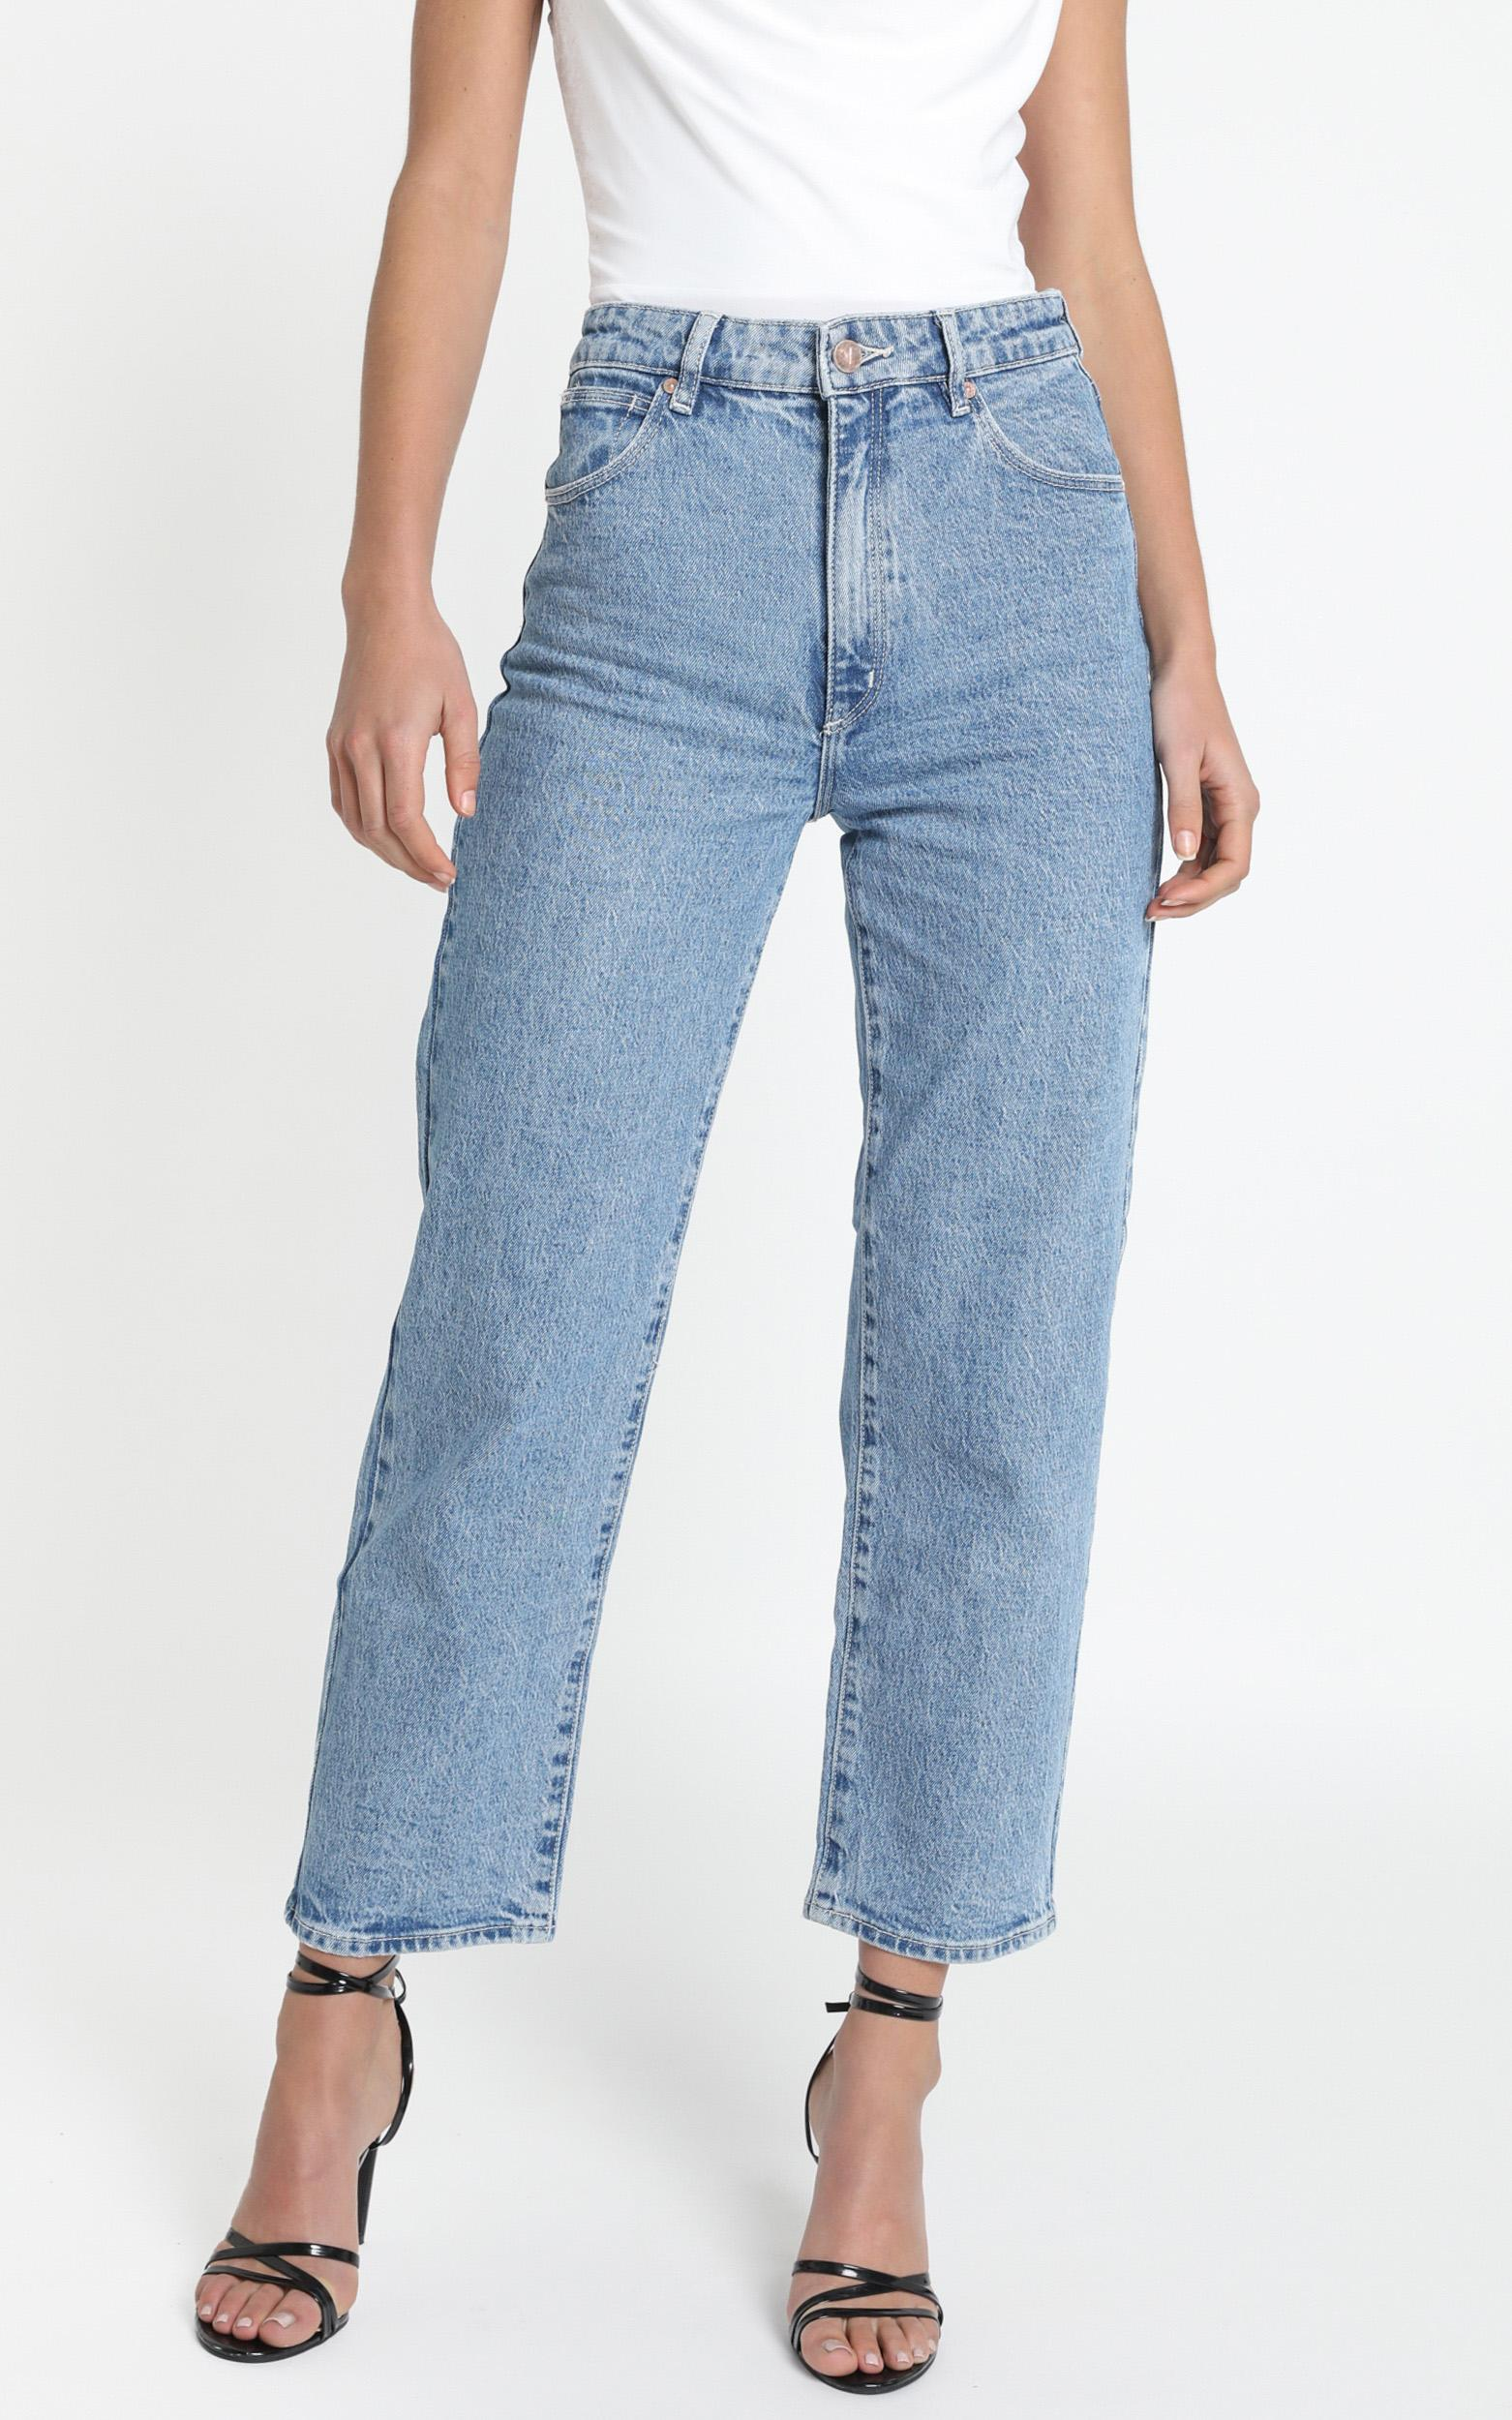 Abrand - A Venice Straight Jeans in stephanie - 14 (XL), BLU1, hi-res image number null